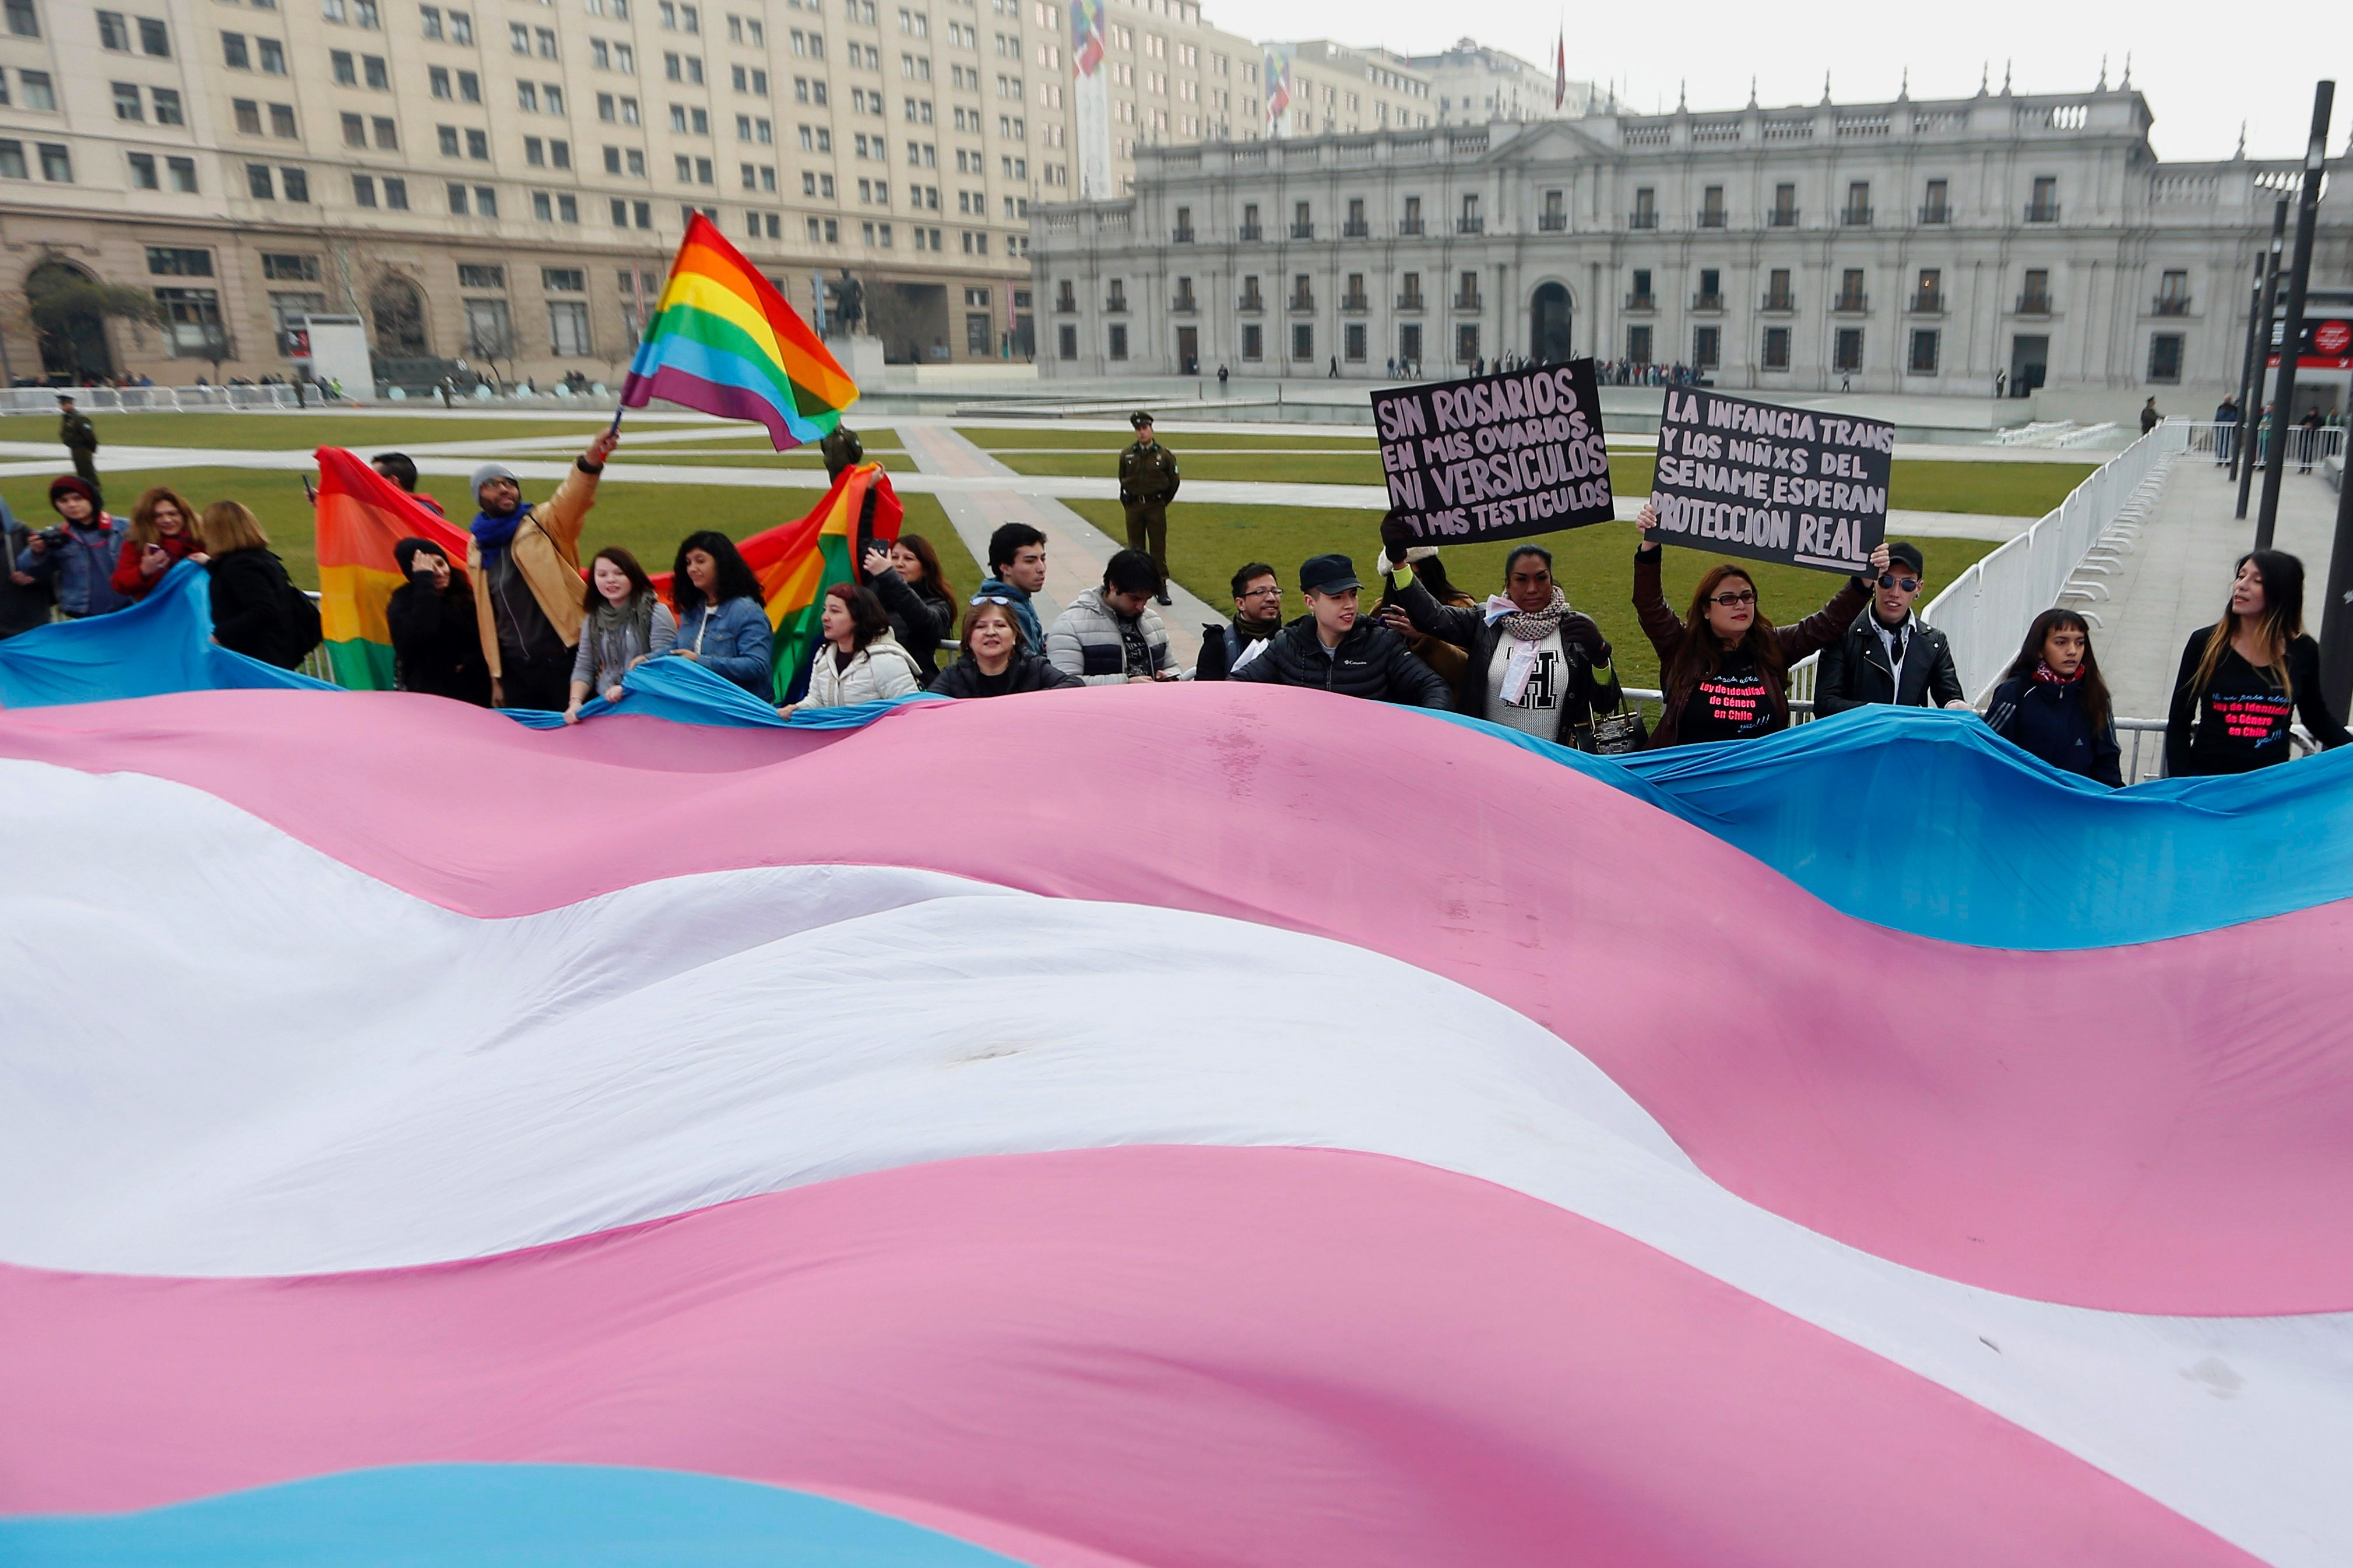 Trans campaigners in Santiago, Chile, where a landmark trans rights law has been passed